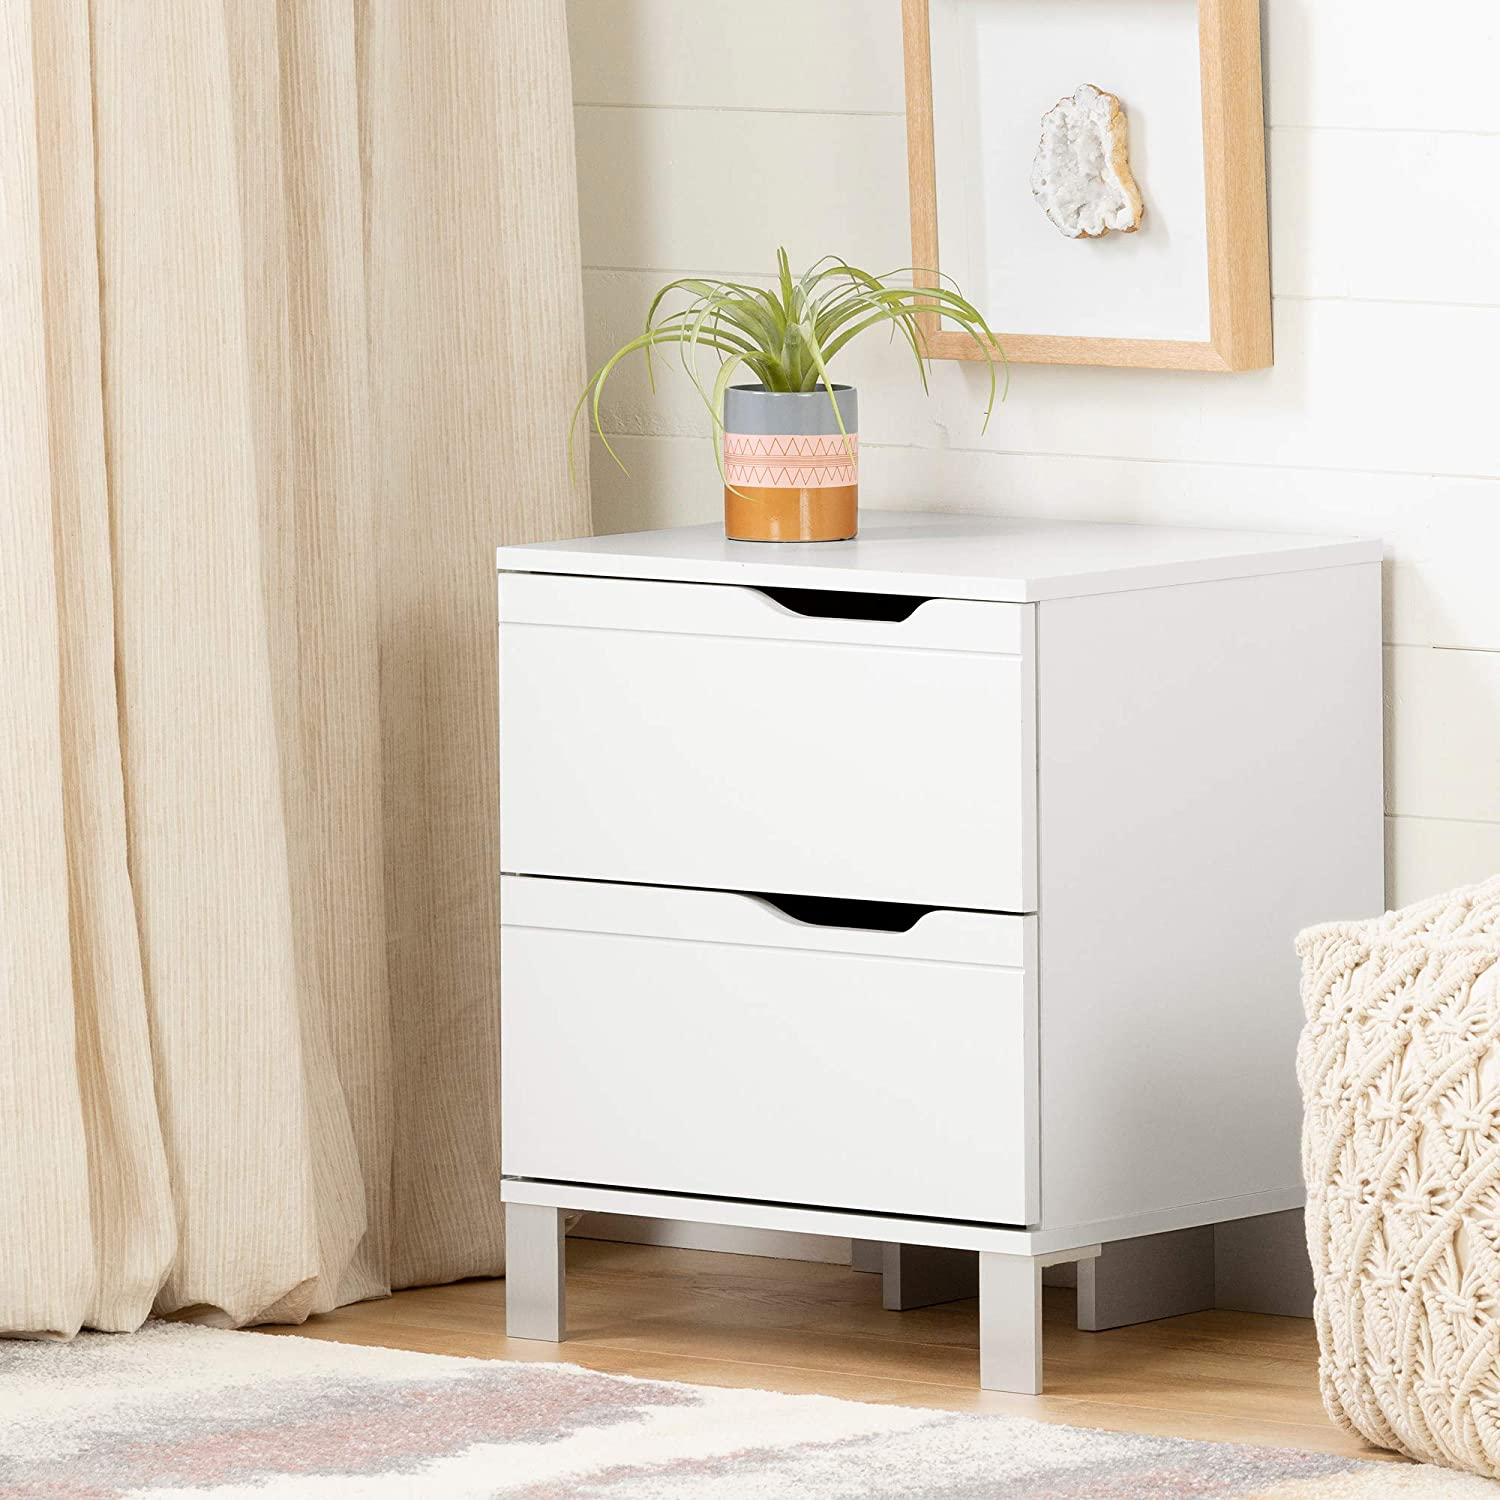 South Shore Kanagane Nightstand-Pure Ranking TOP6 White 2-Drawer Limited price sale